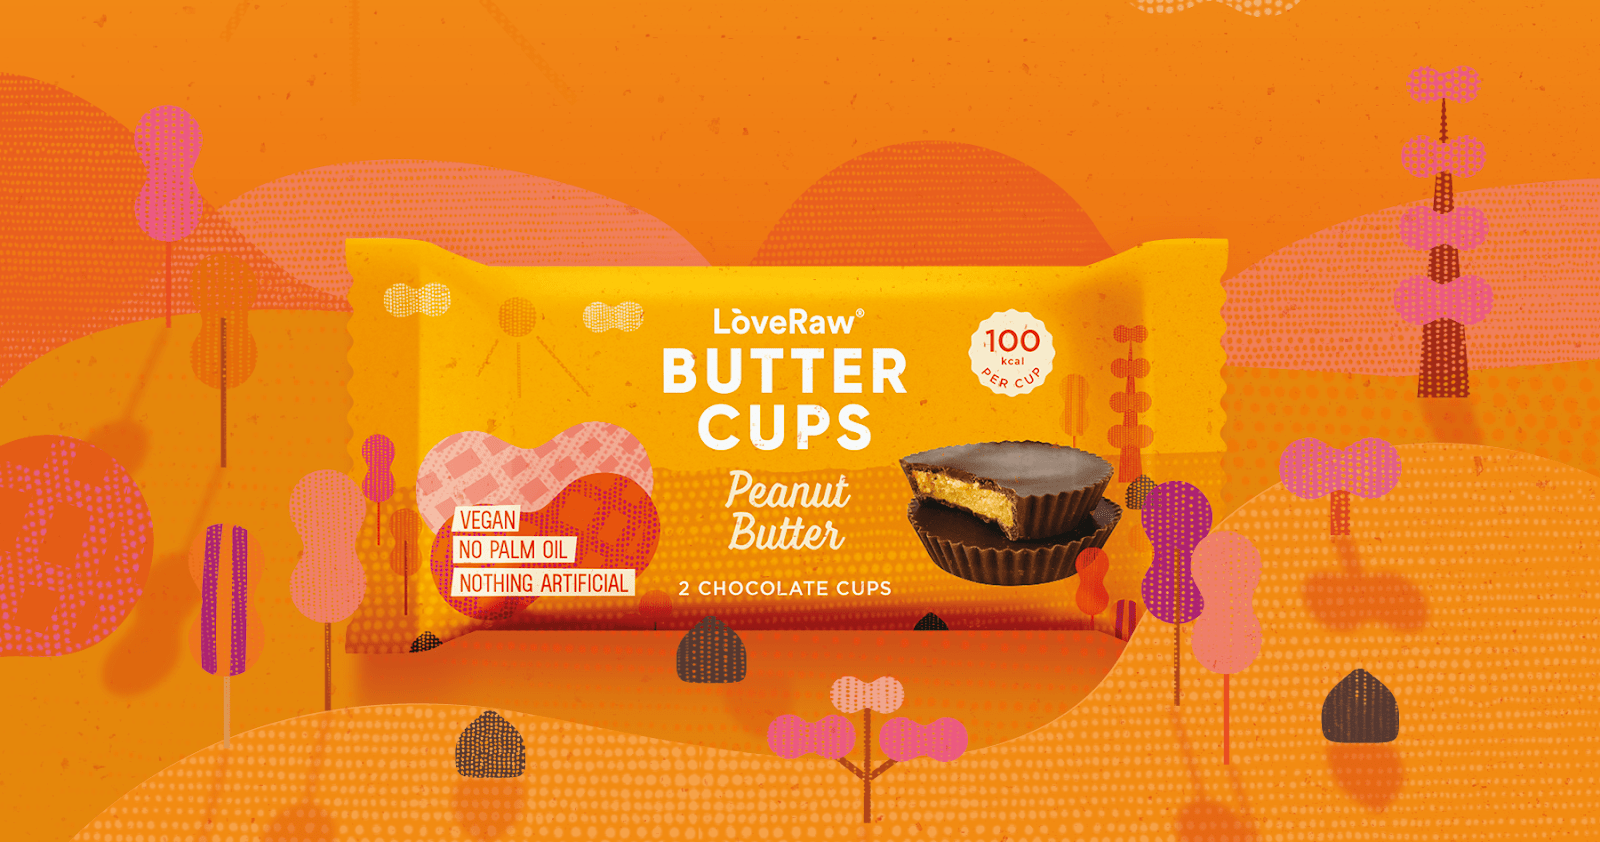 Palm-oil free and sugar-free vegan peanut butter cups are launching in Waitrose